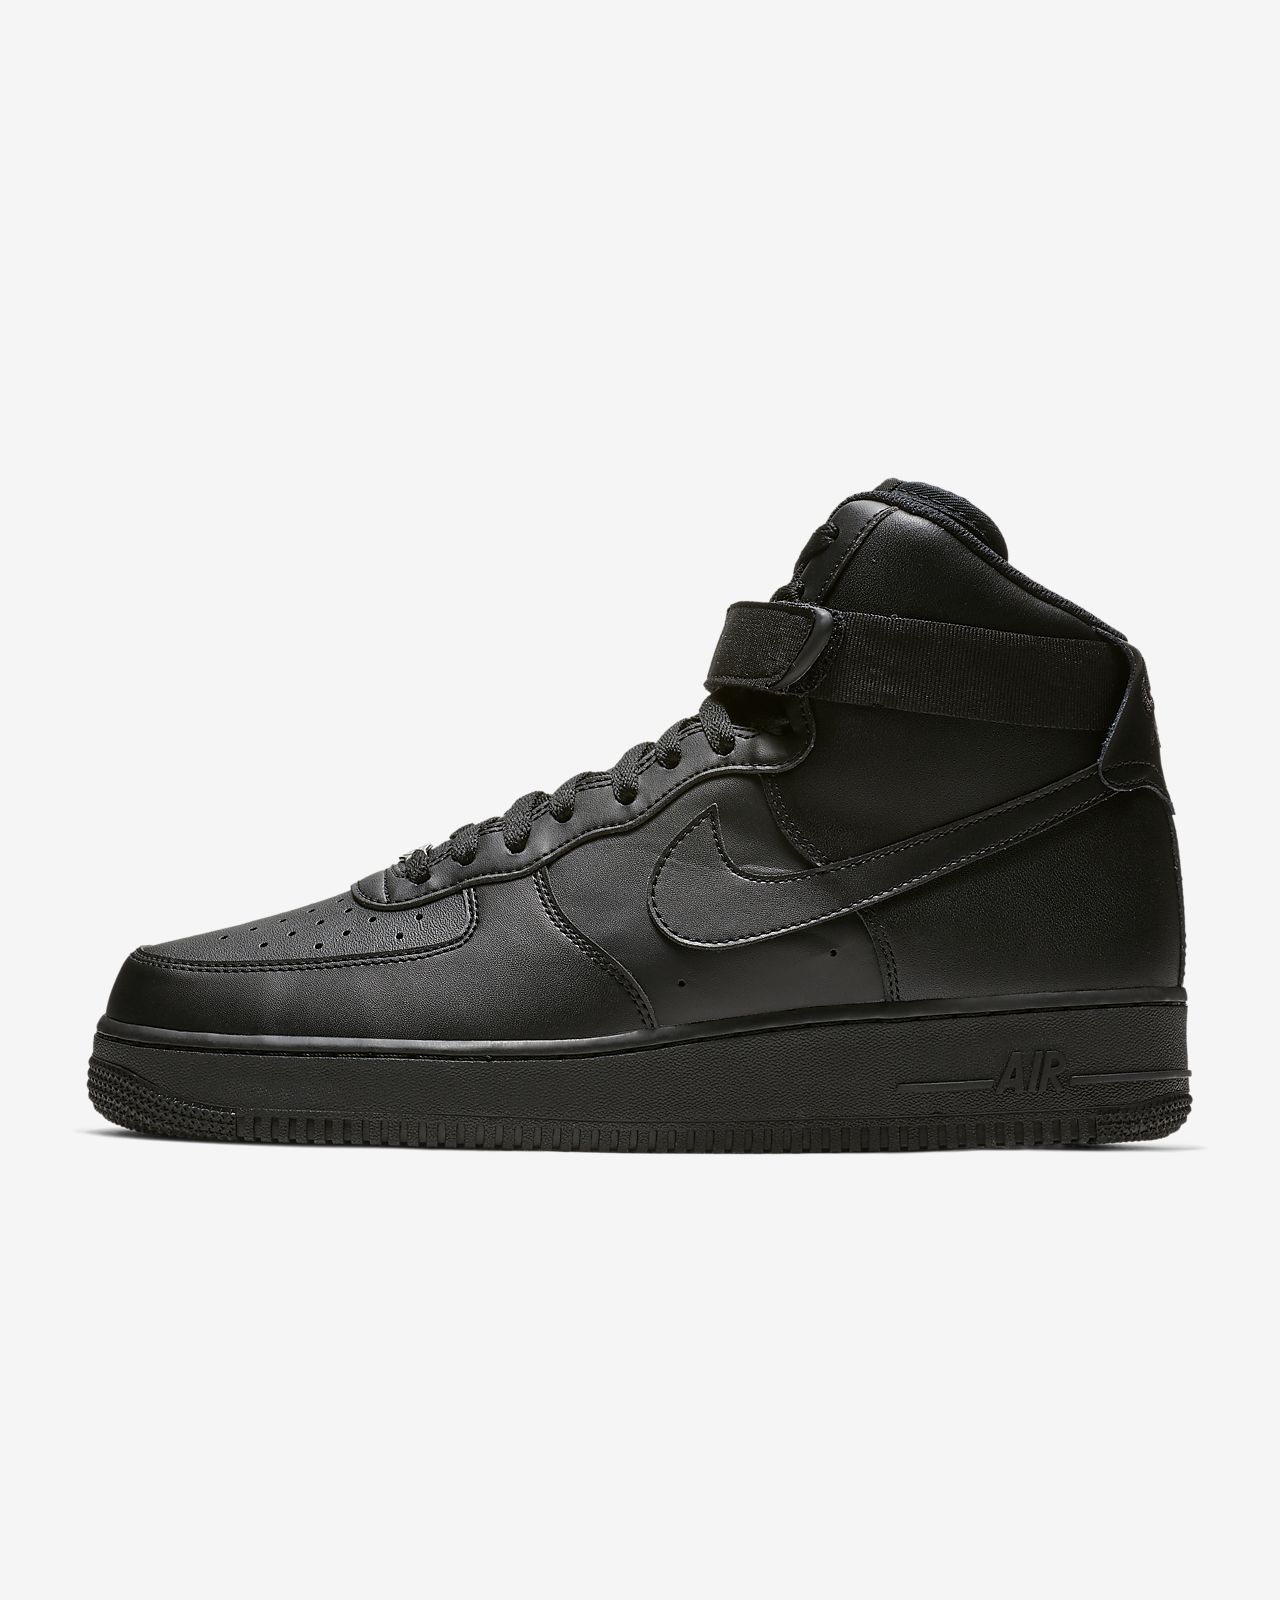 promo code 252b8 a53f1 ... Nike Air Force 1 High 07 Men s Shoe